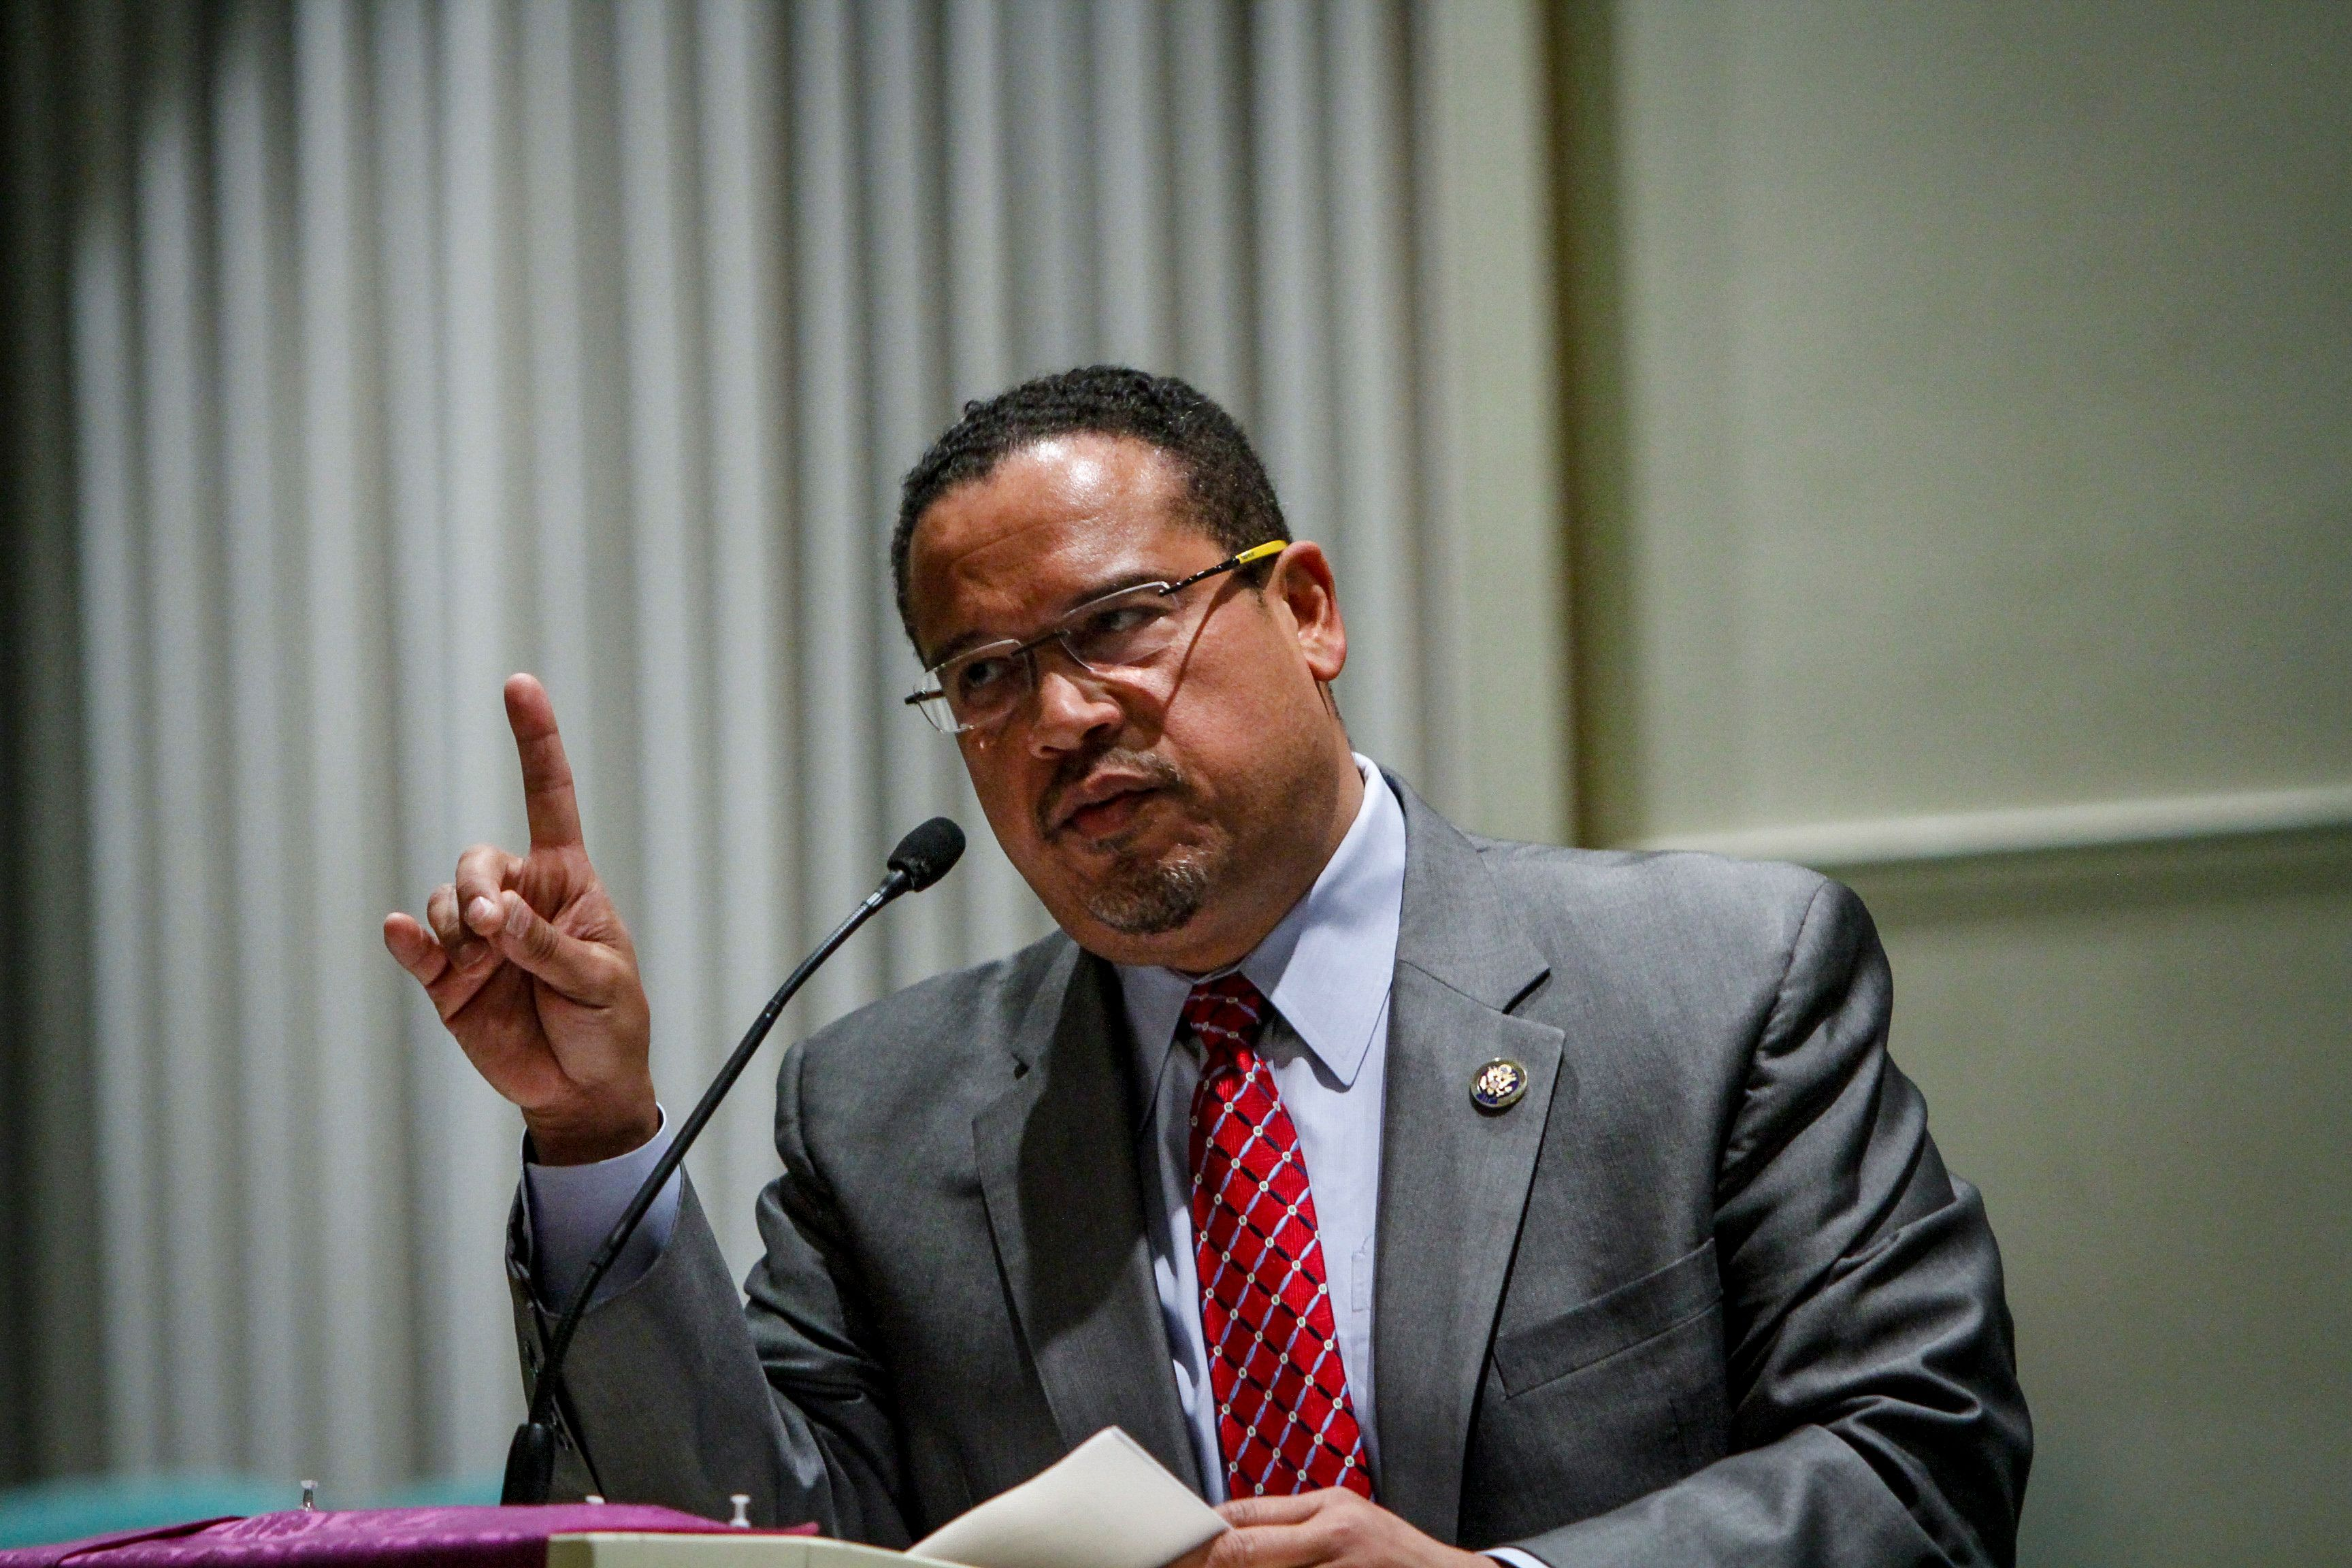 Rep. Keith Ellison (D-Minn.) campaigned for Democratic National Committee chair in Detroit Thursday and spoke about the